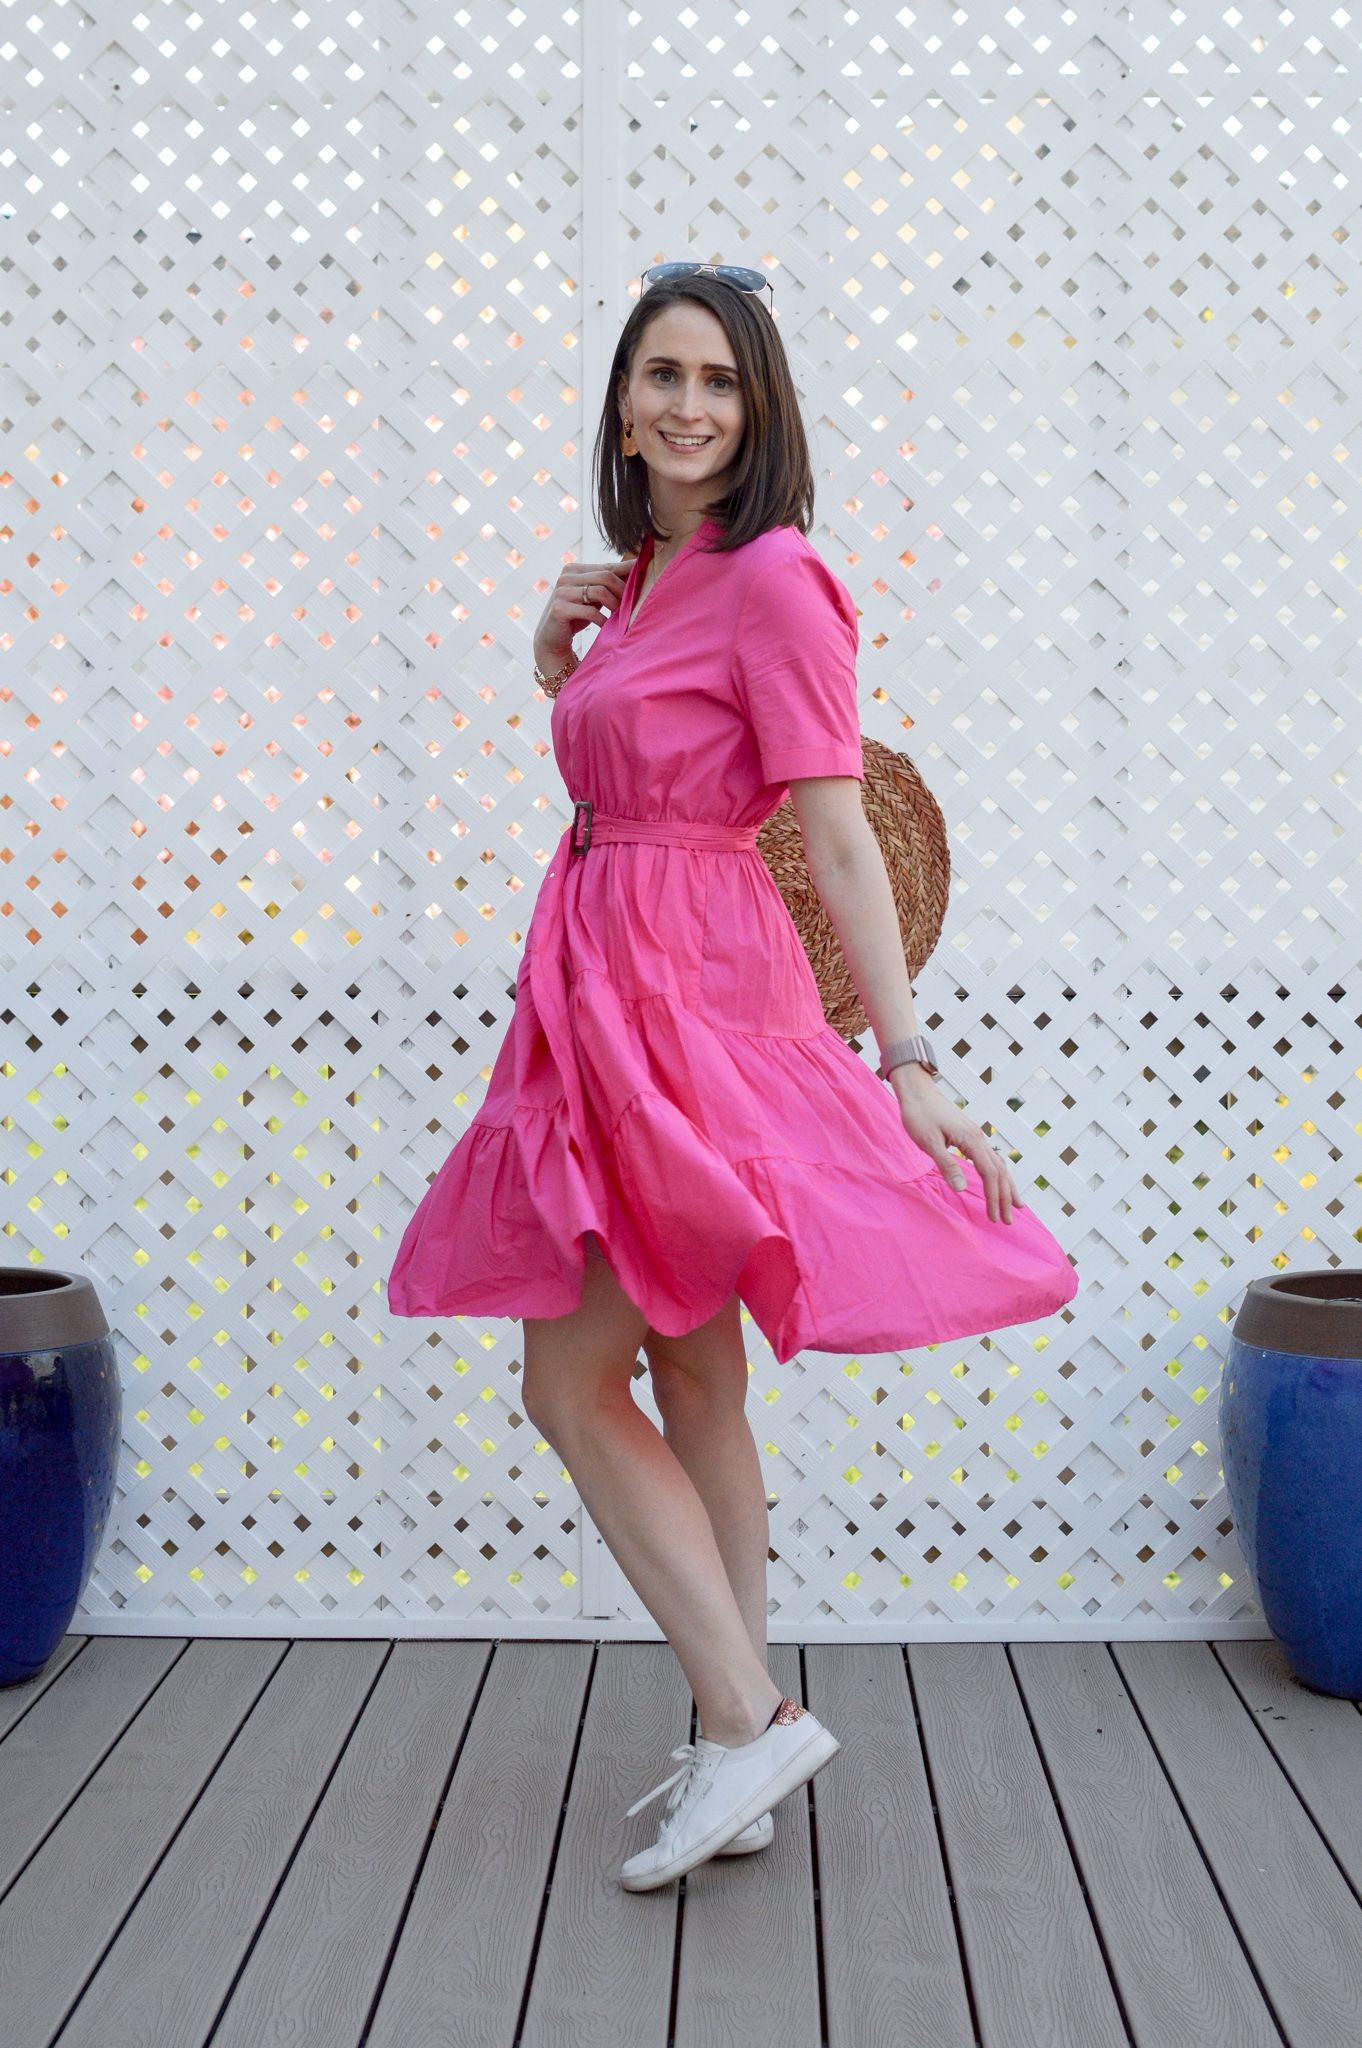 Adding Color To Your Wardrobe Breezing Through Hot Pink Dresses Pink Dress Pink Summer Dress [ 2048 x 1362 Pixel ]